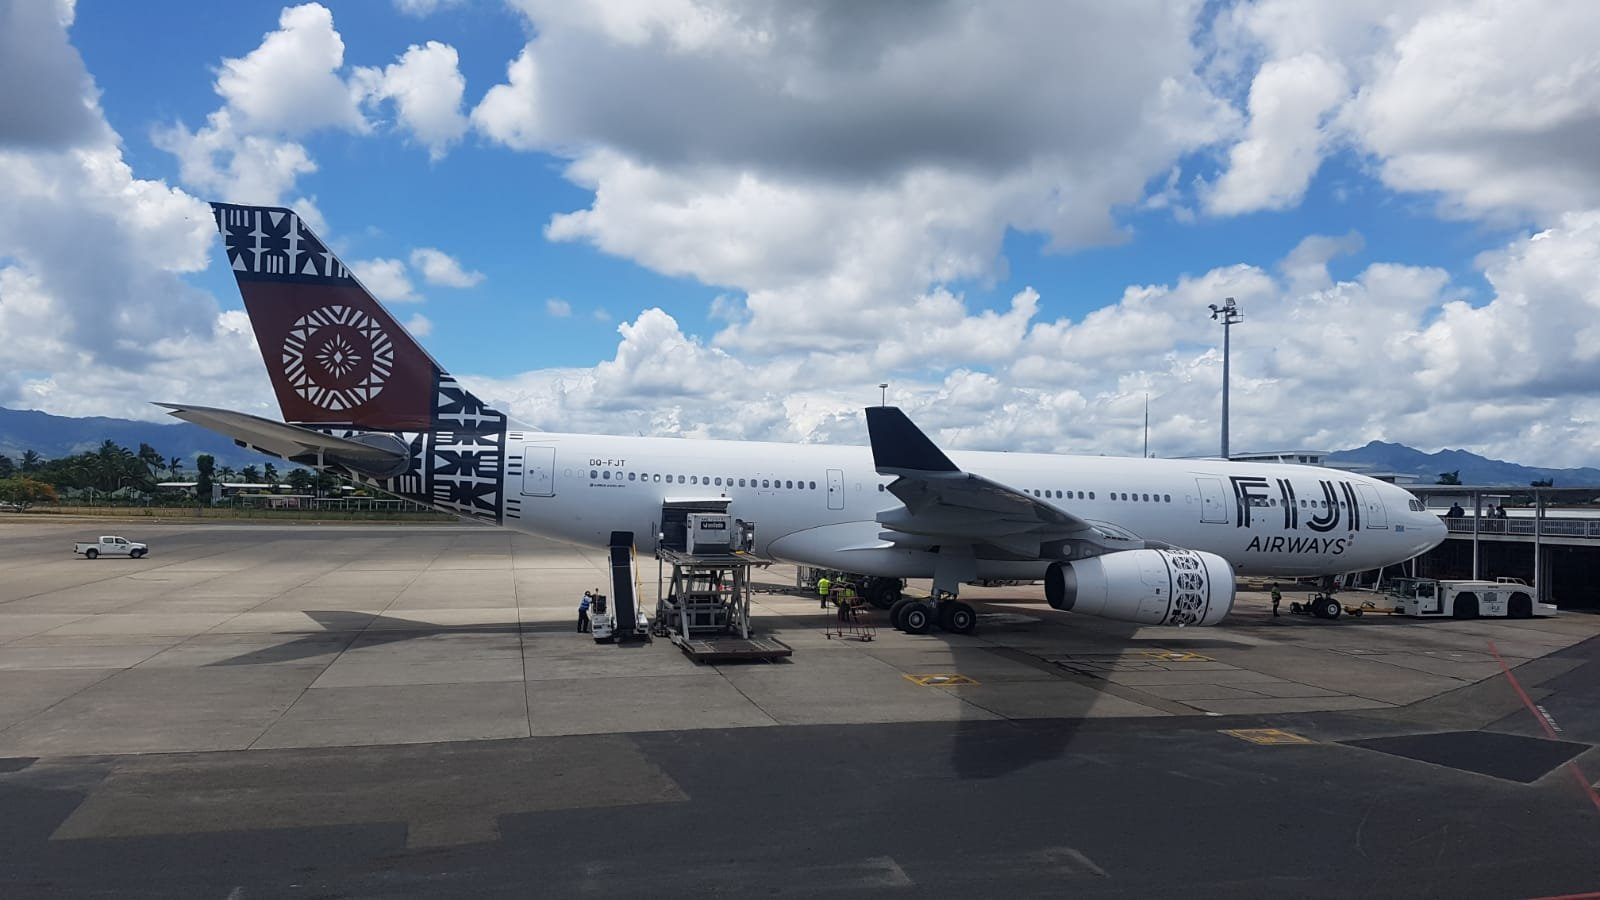 Fiji-Airlines